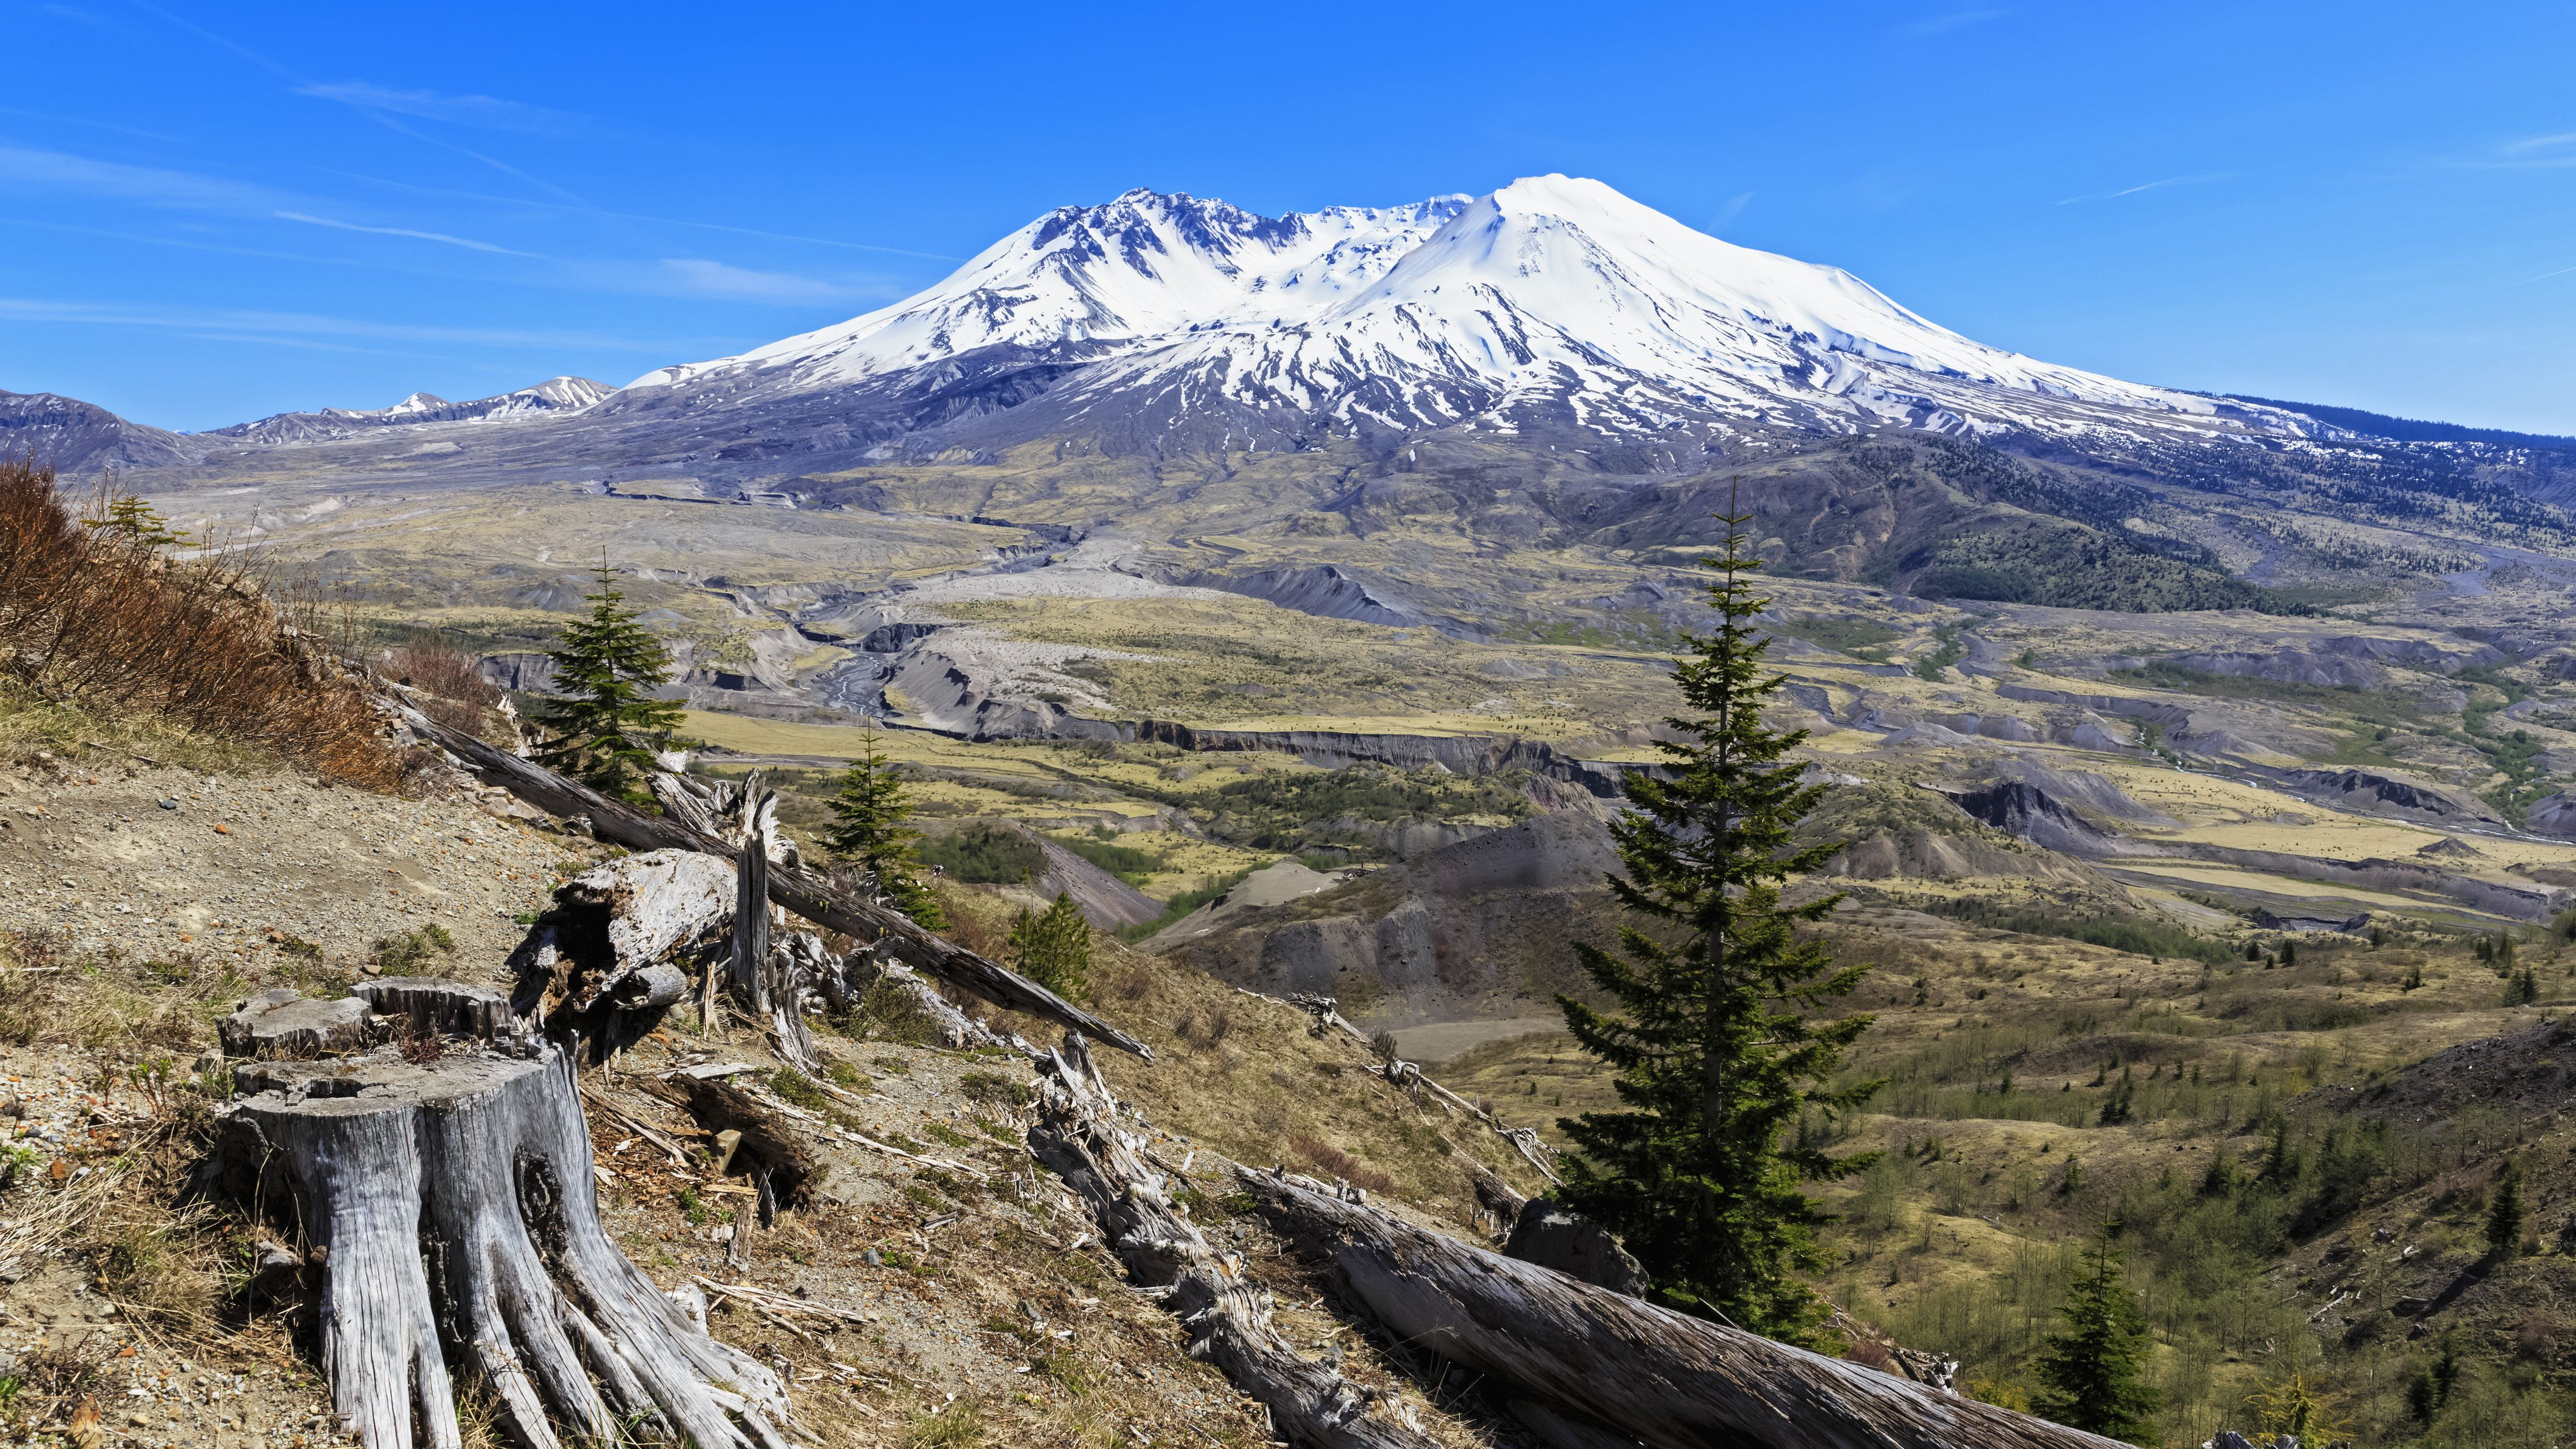 Mount St  Helens Lodging and Camping Recommendations